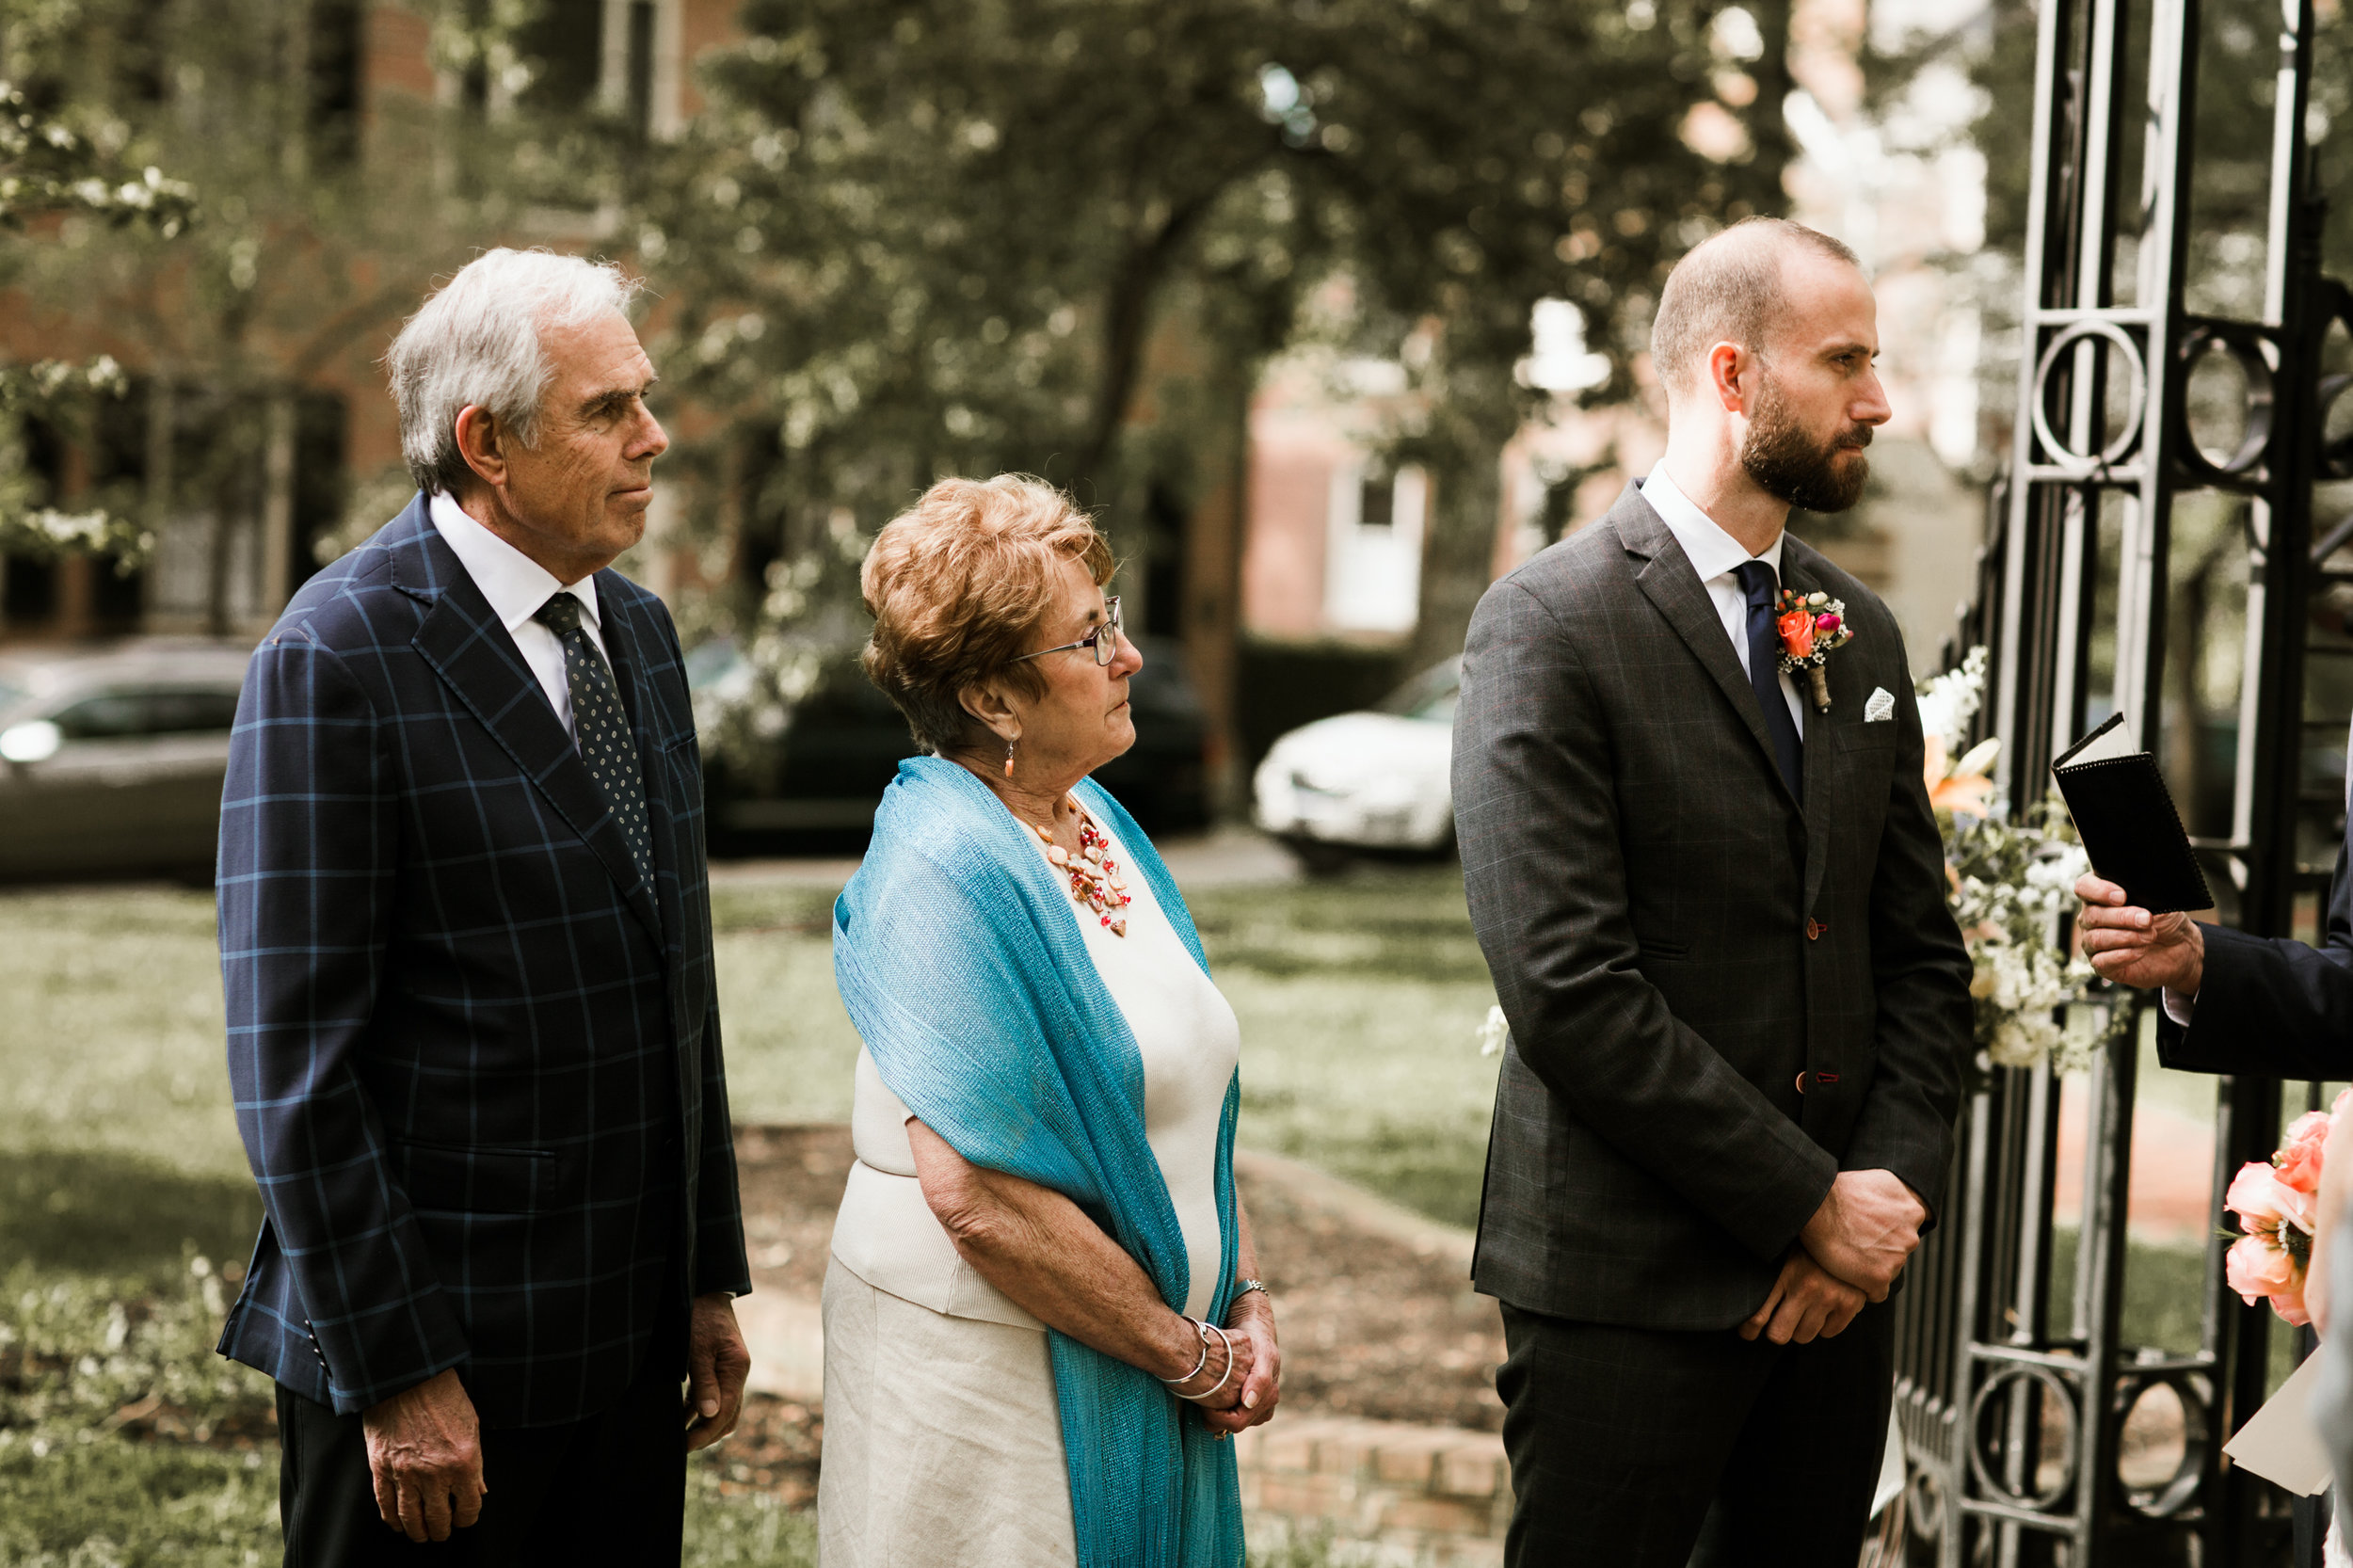 Louisville Courthouse Wedding Louisville Wedding Photographer 2018 Crystal Ludwick Photo Louisville Wedding Photographer Kentucky Wedding Photographer (38 of 76).jpg